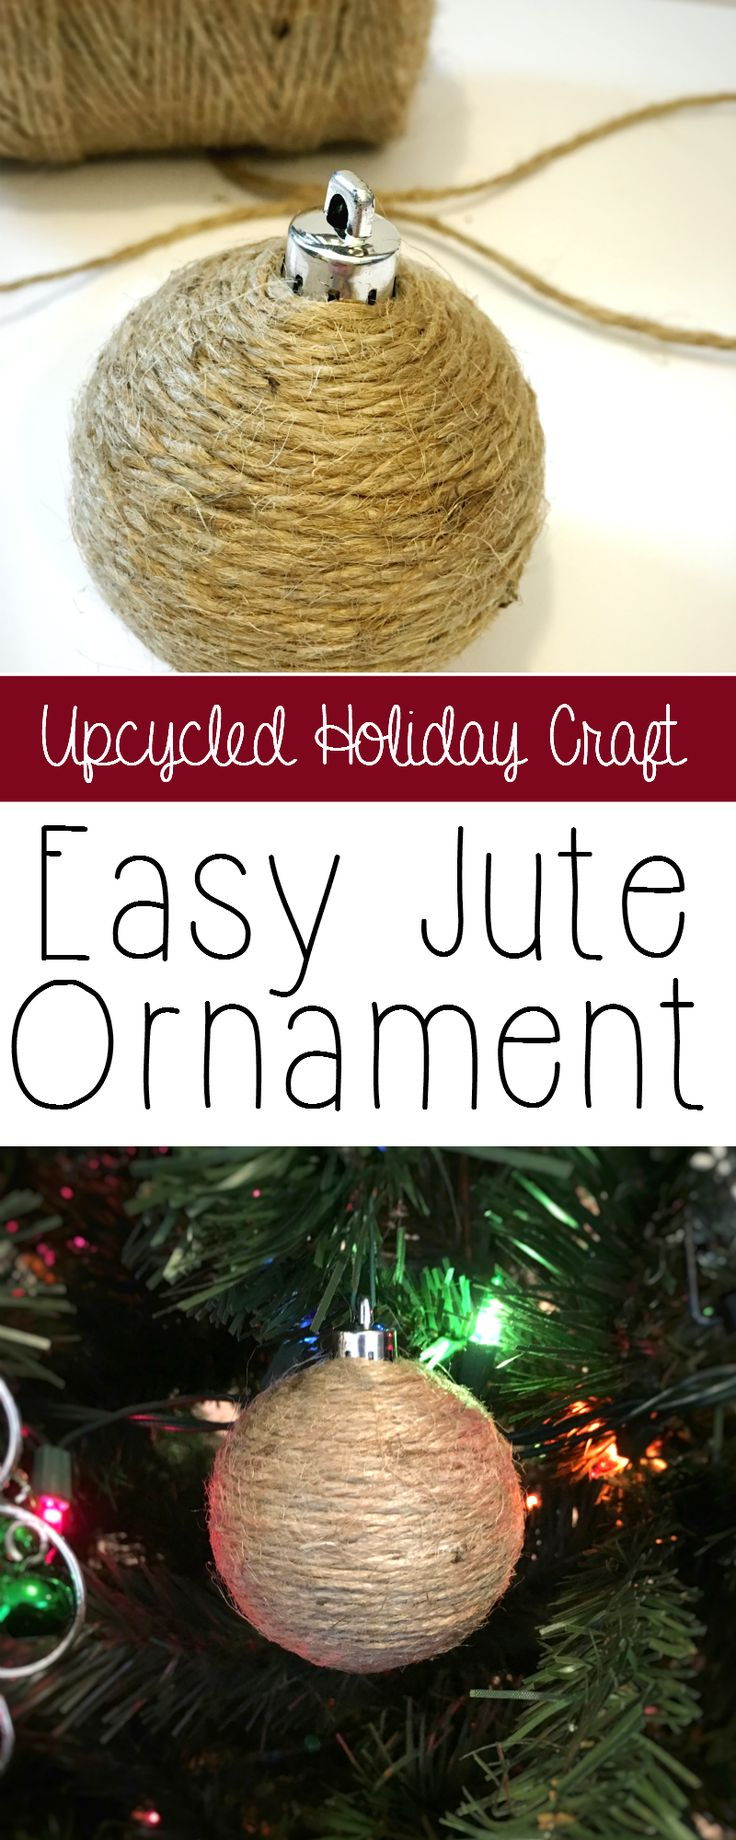 These upcycled ornaments are simple and so inexpensive. Revamp your Christmas deco